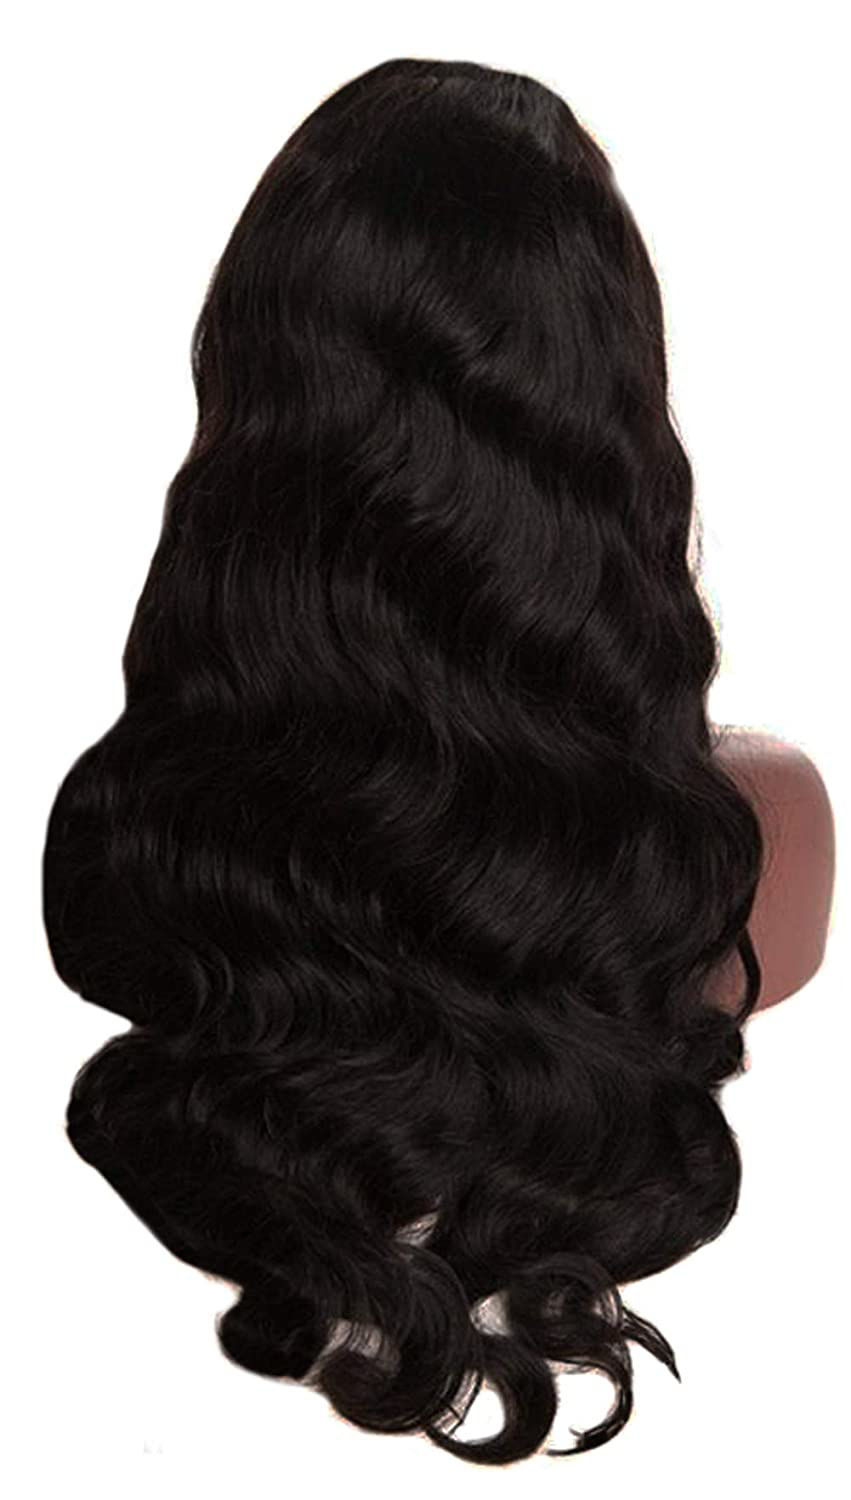 Body Wave Lace Closure Wig Human Hair Glueless 4x4 Lace Closure Wig Human Hair Wigs for Black Women 3